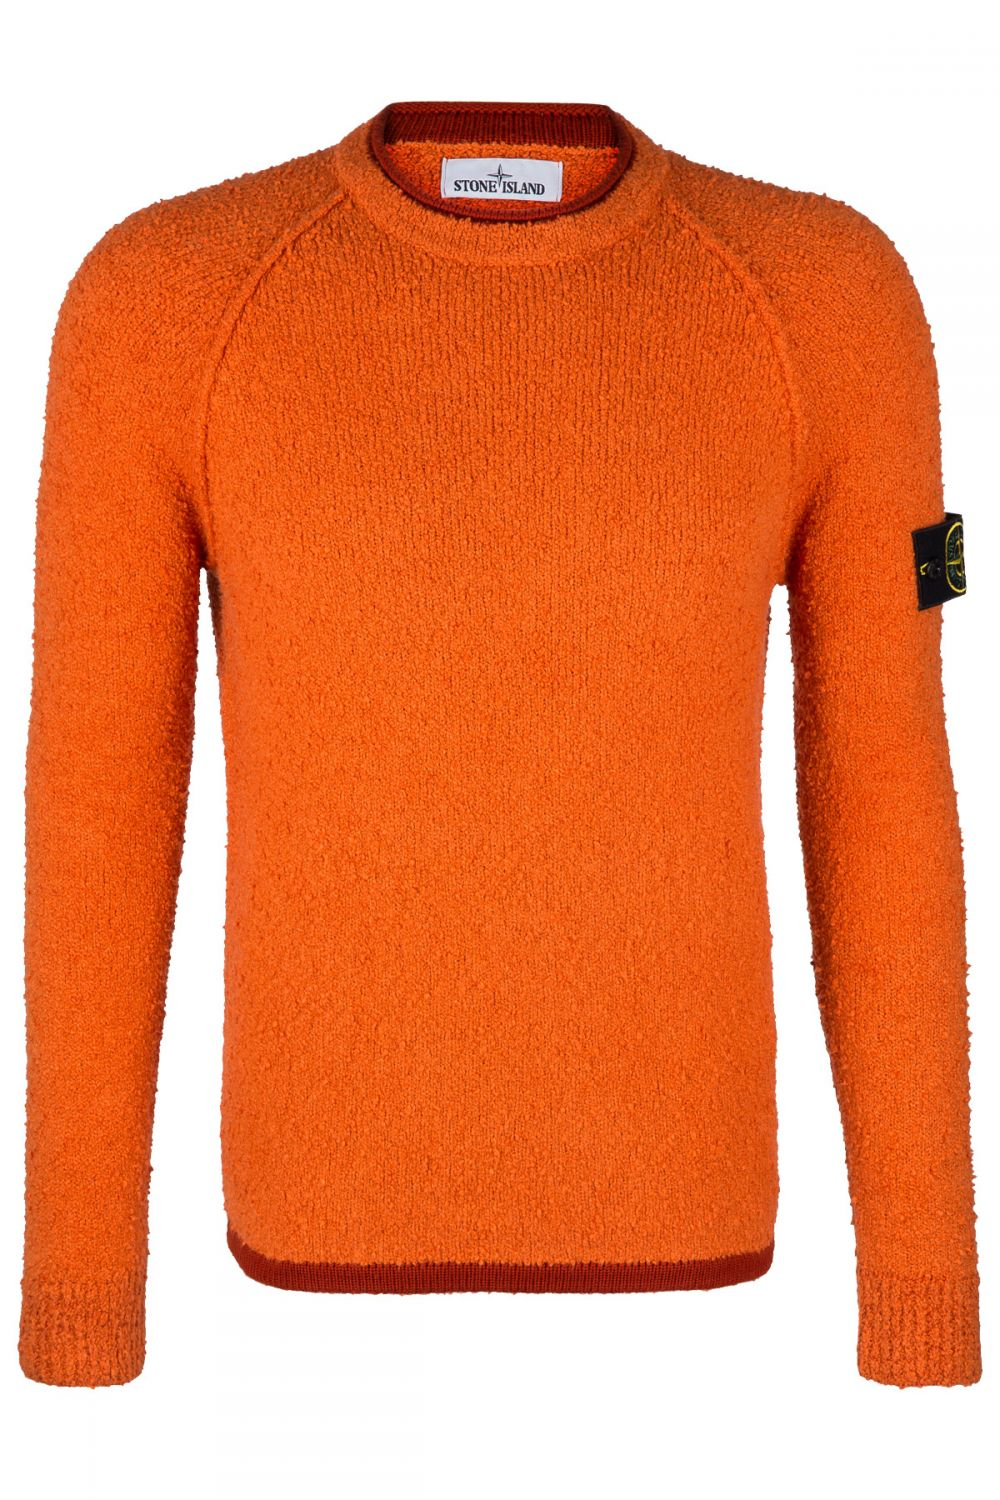 Stone Island Herren Strickpullover Orange